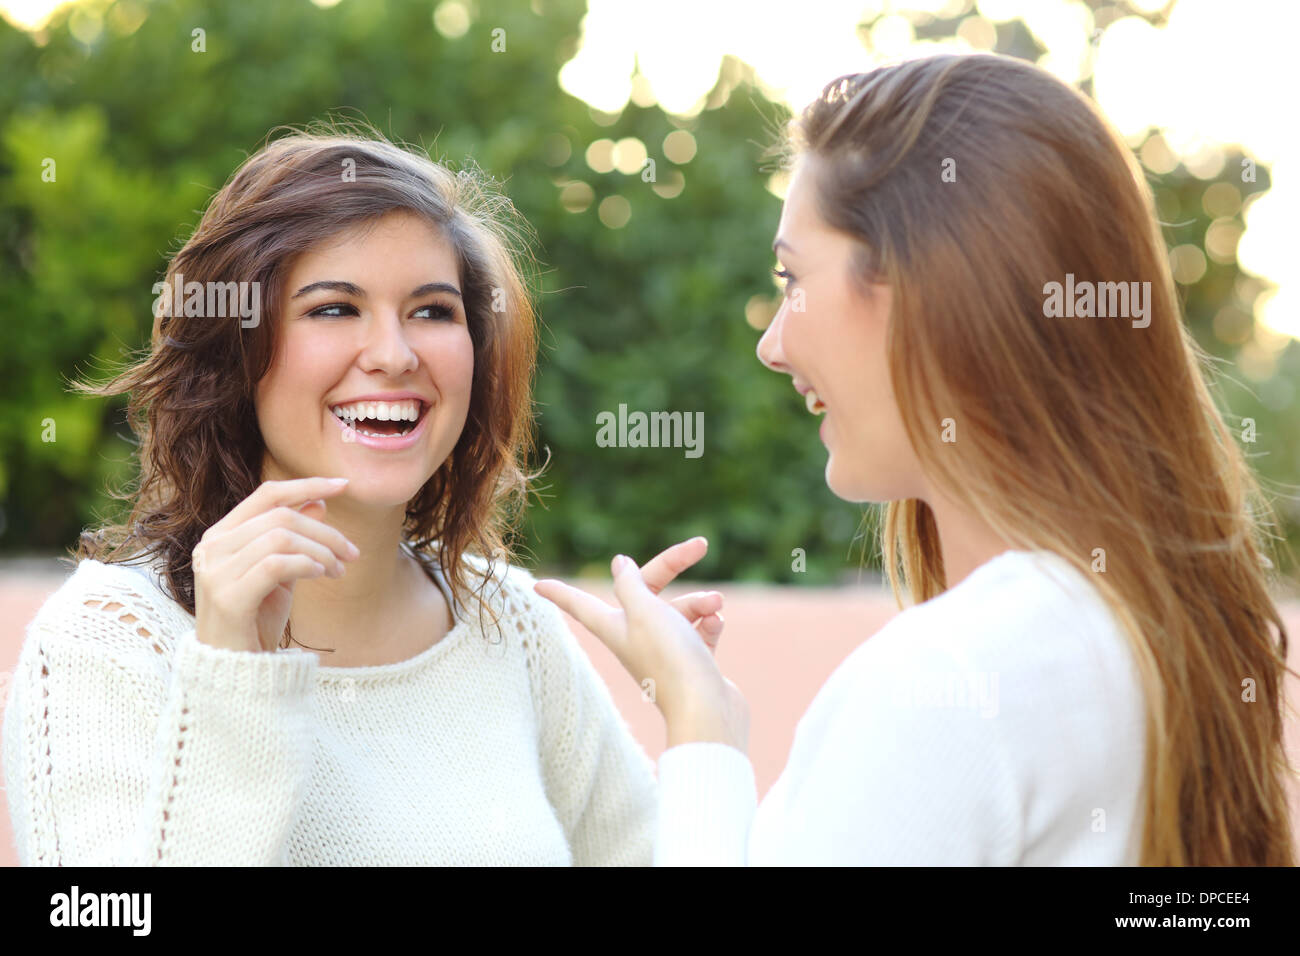 Two young women talking happy outdoor - Stock Image